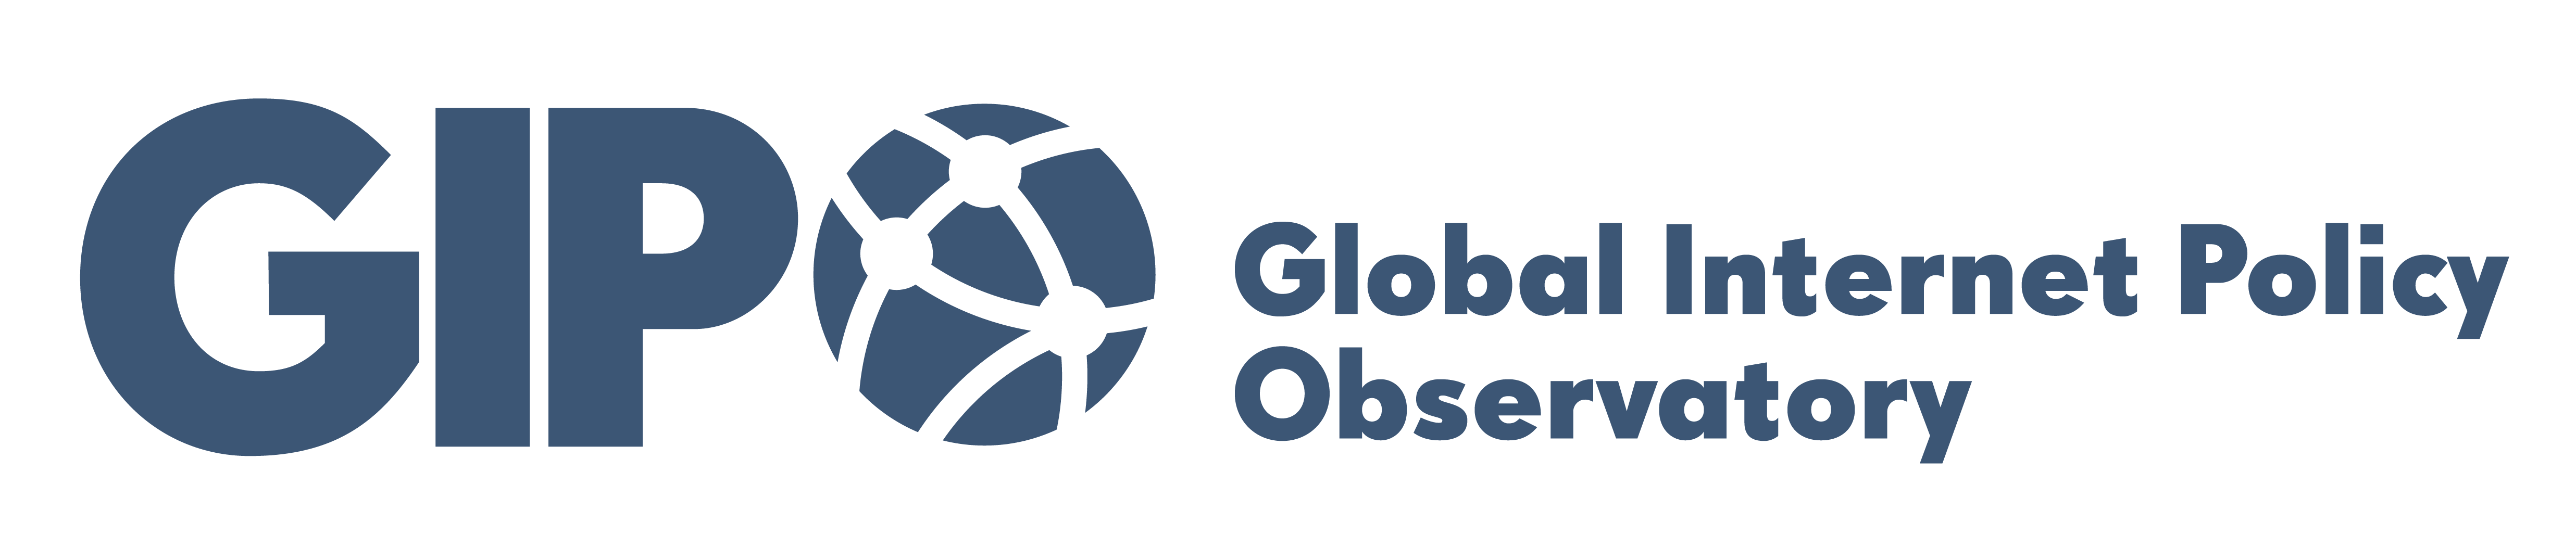 Global Internet Policy Observatory logo